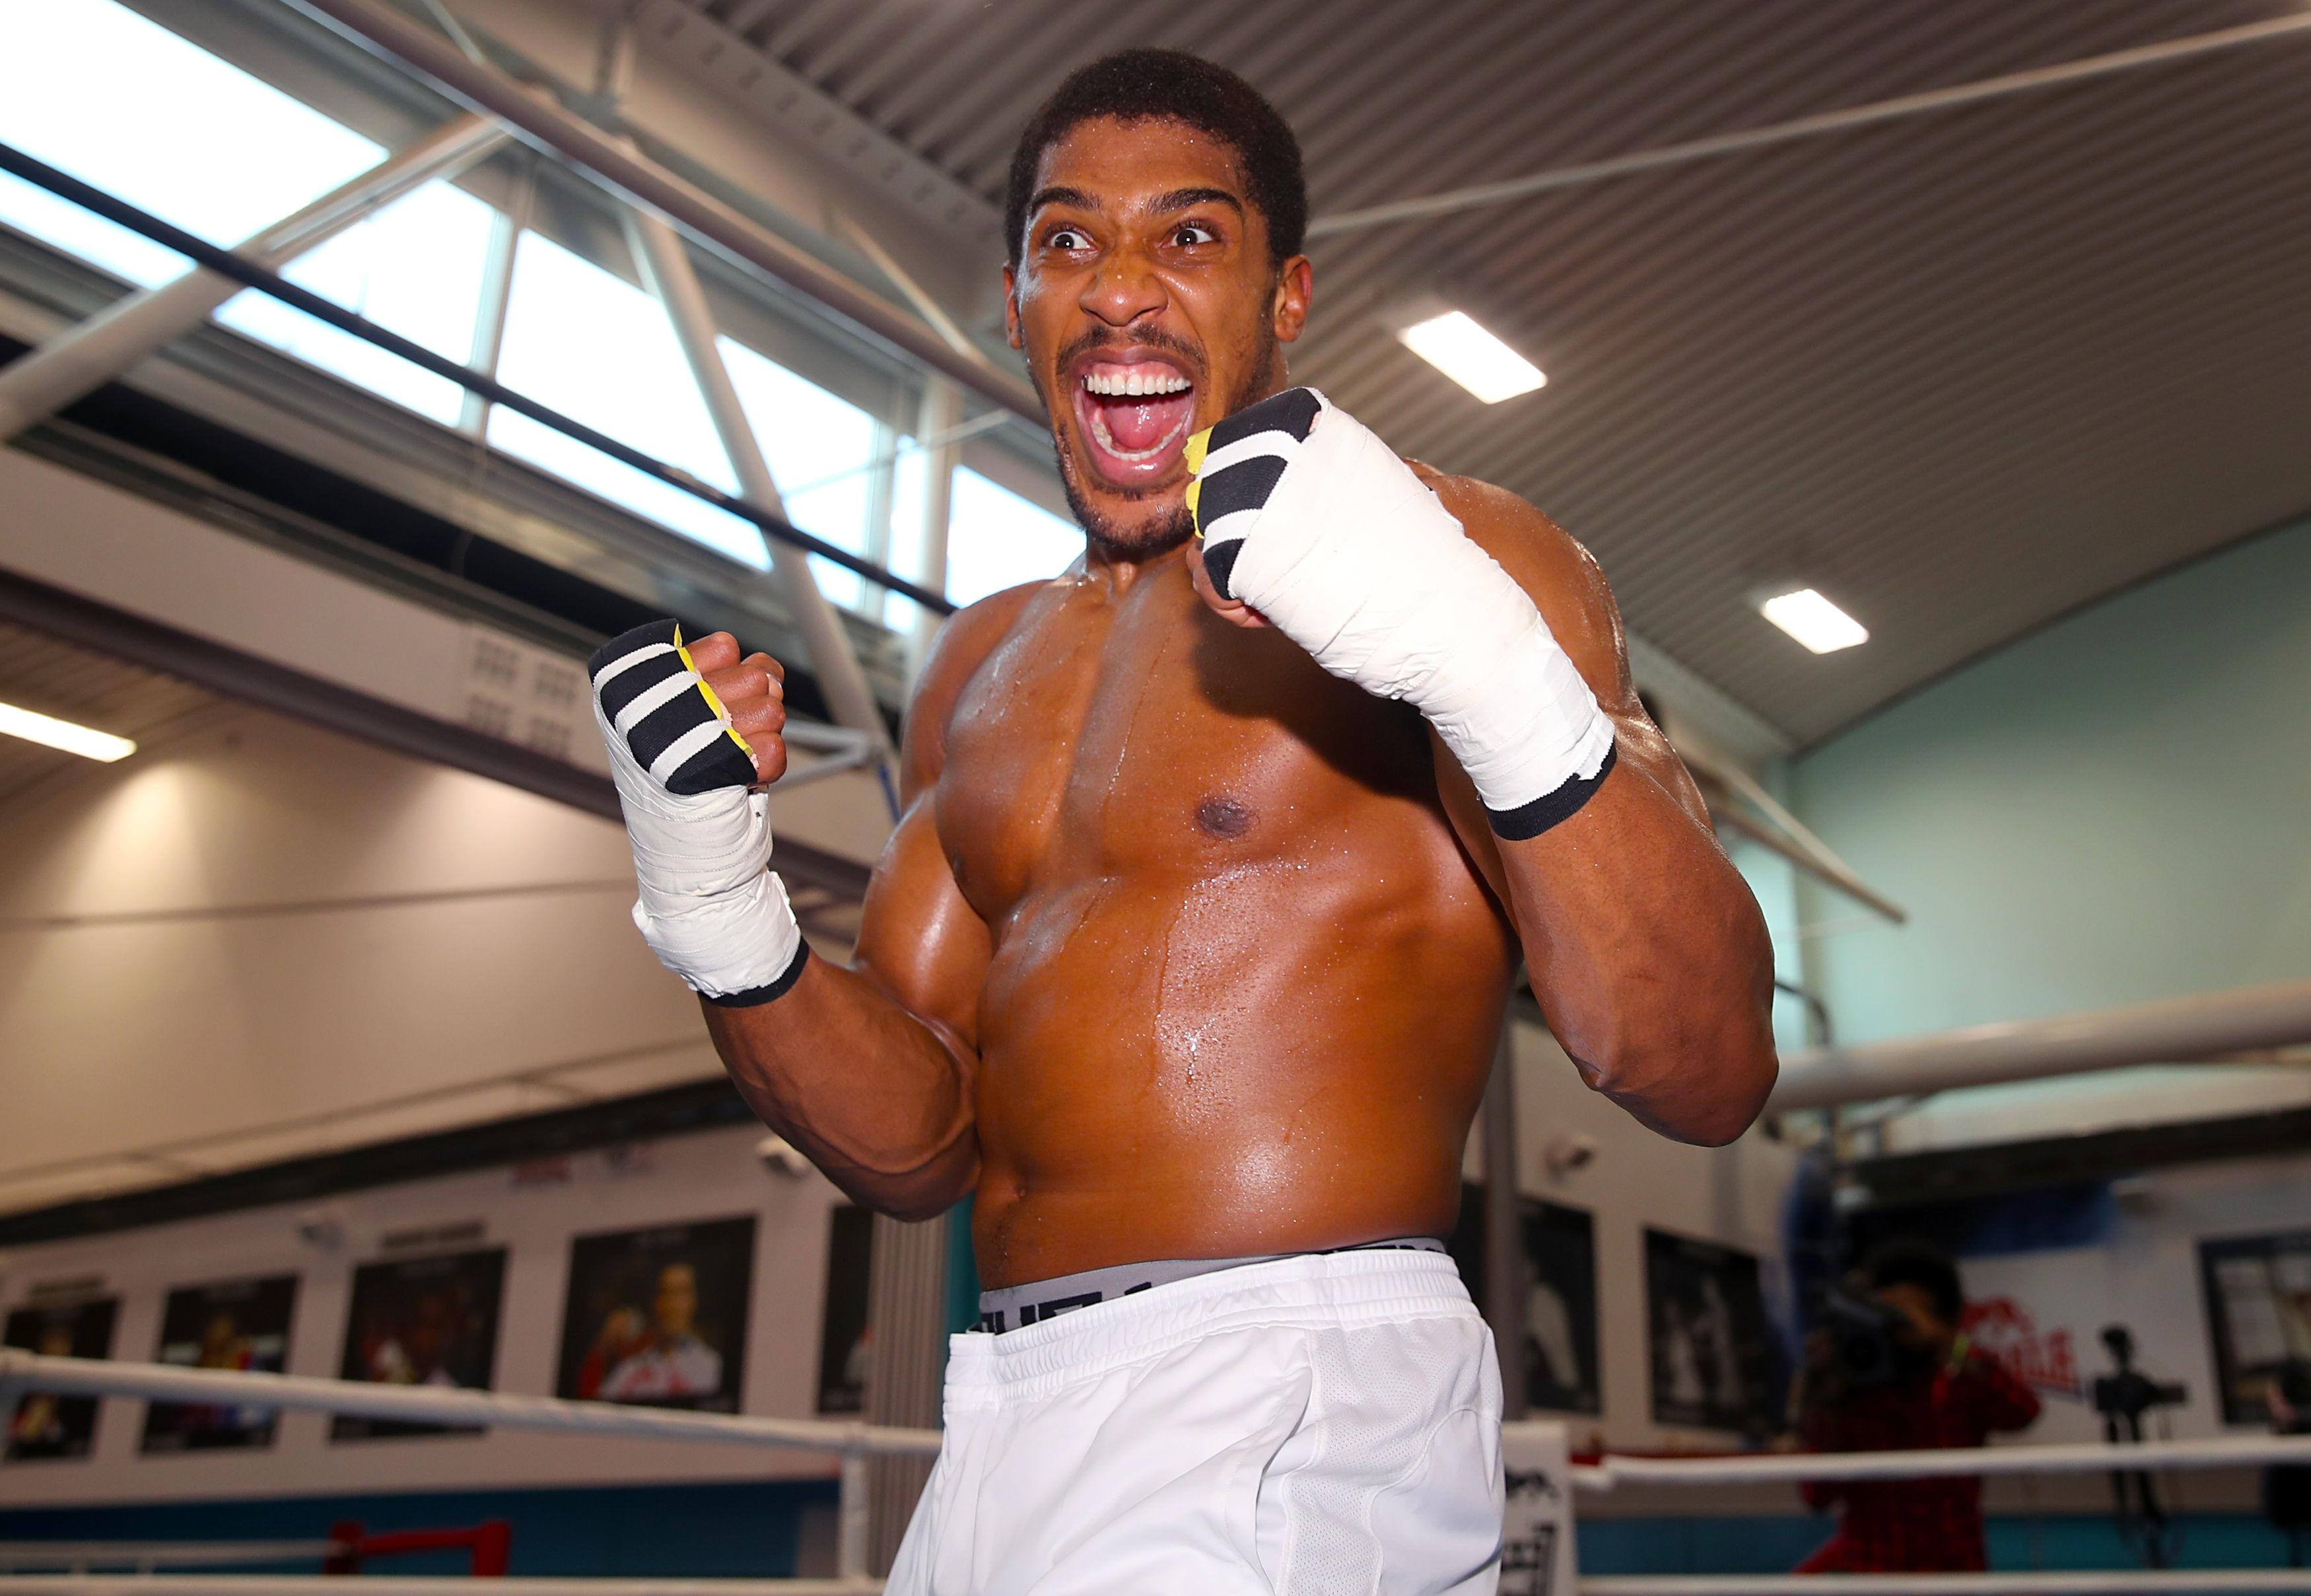 AJ is ready to take on USA champ Deontay Wilder - regardless of whether he beats or loses to Tyson Fury later this year